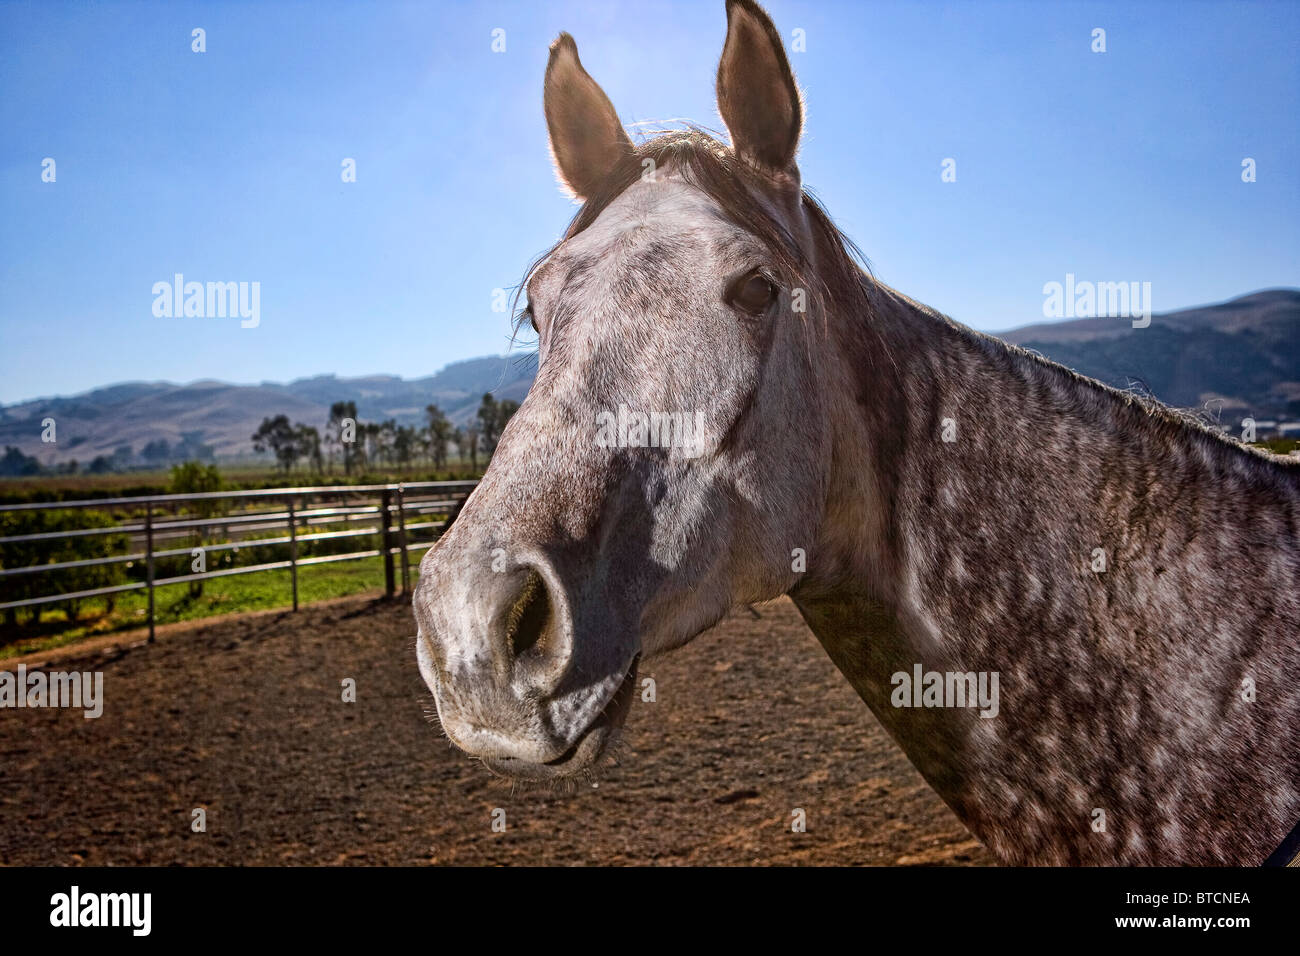 A grey horse head shot - Stock Image